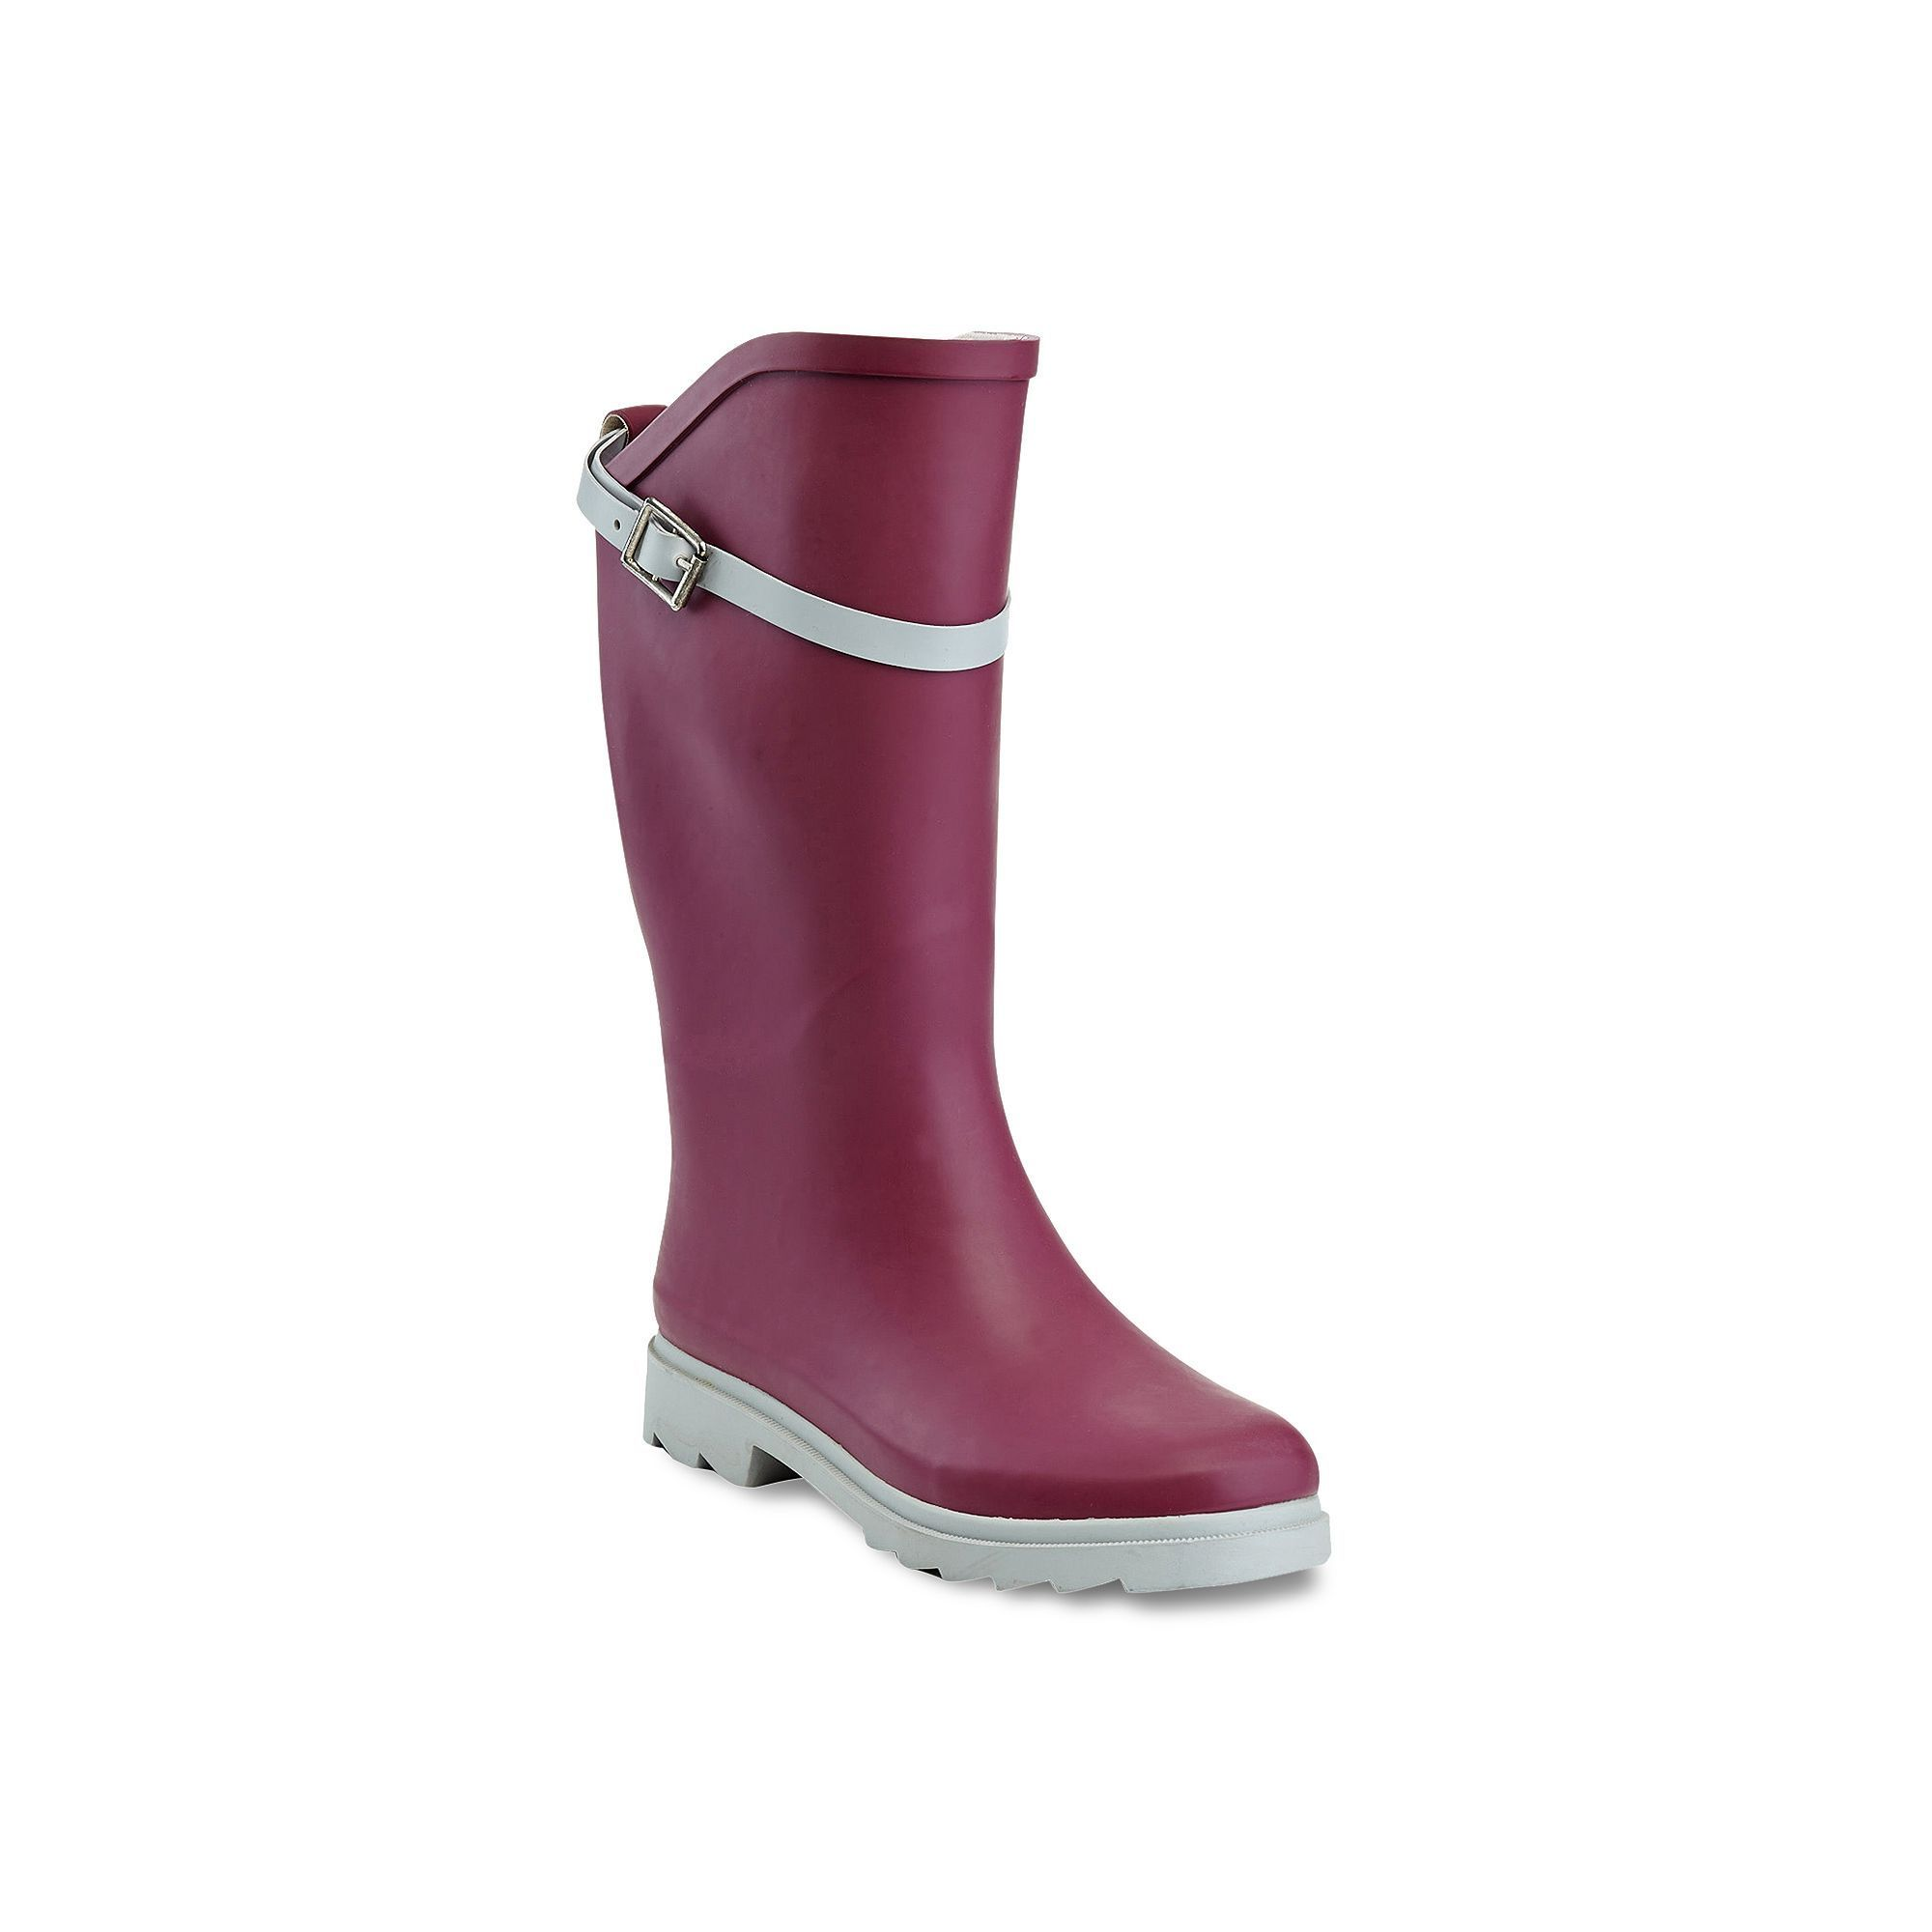 Rubber boots: the pros and cons of modern models